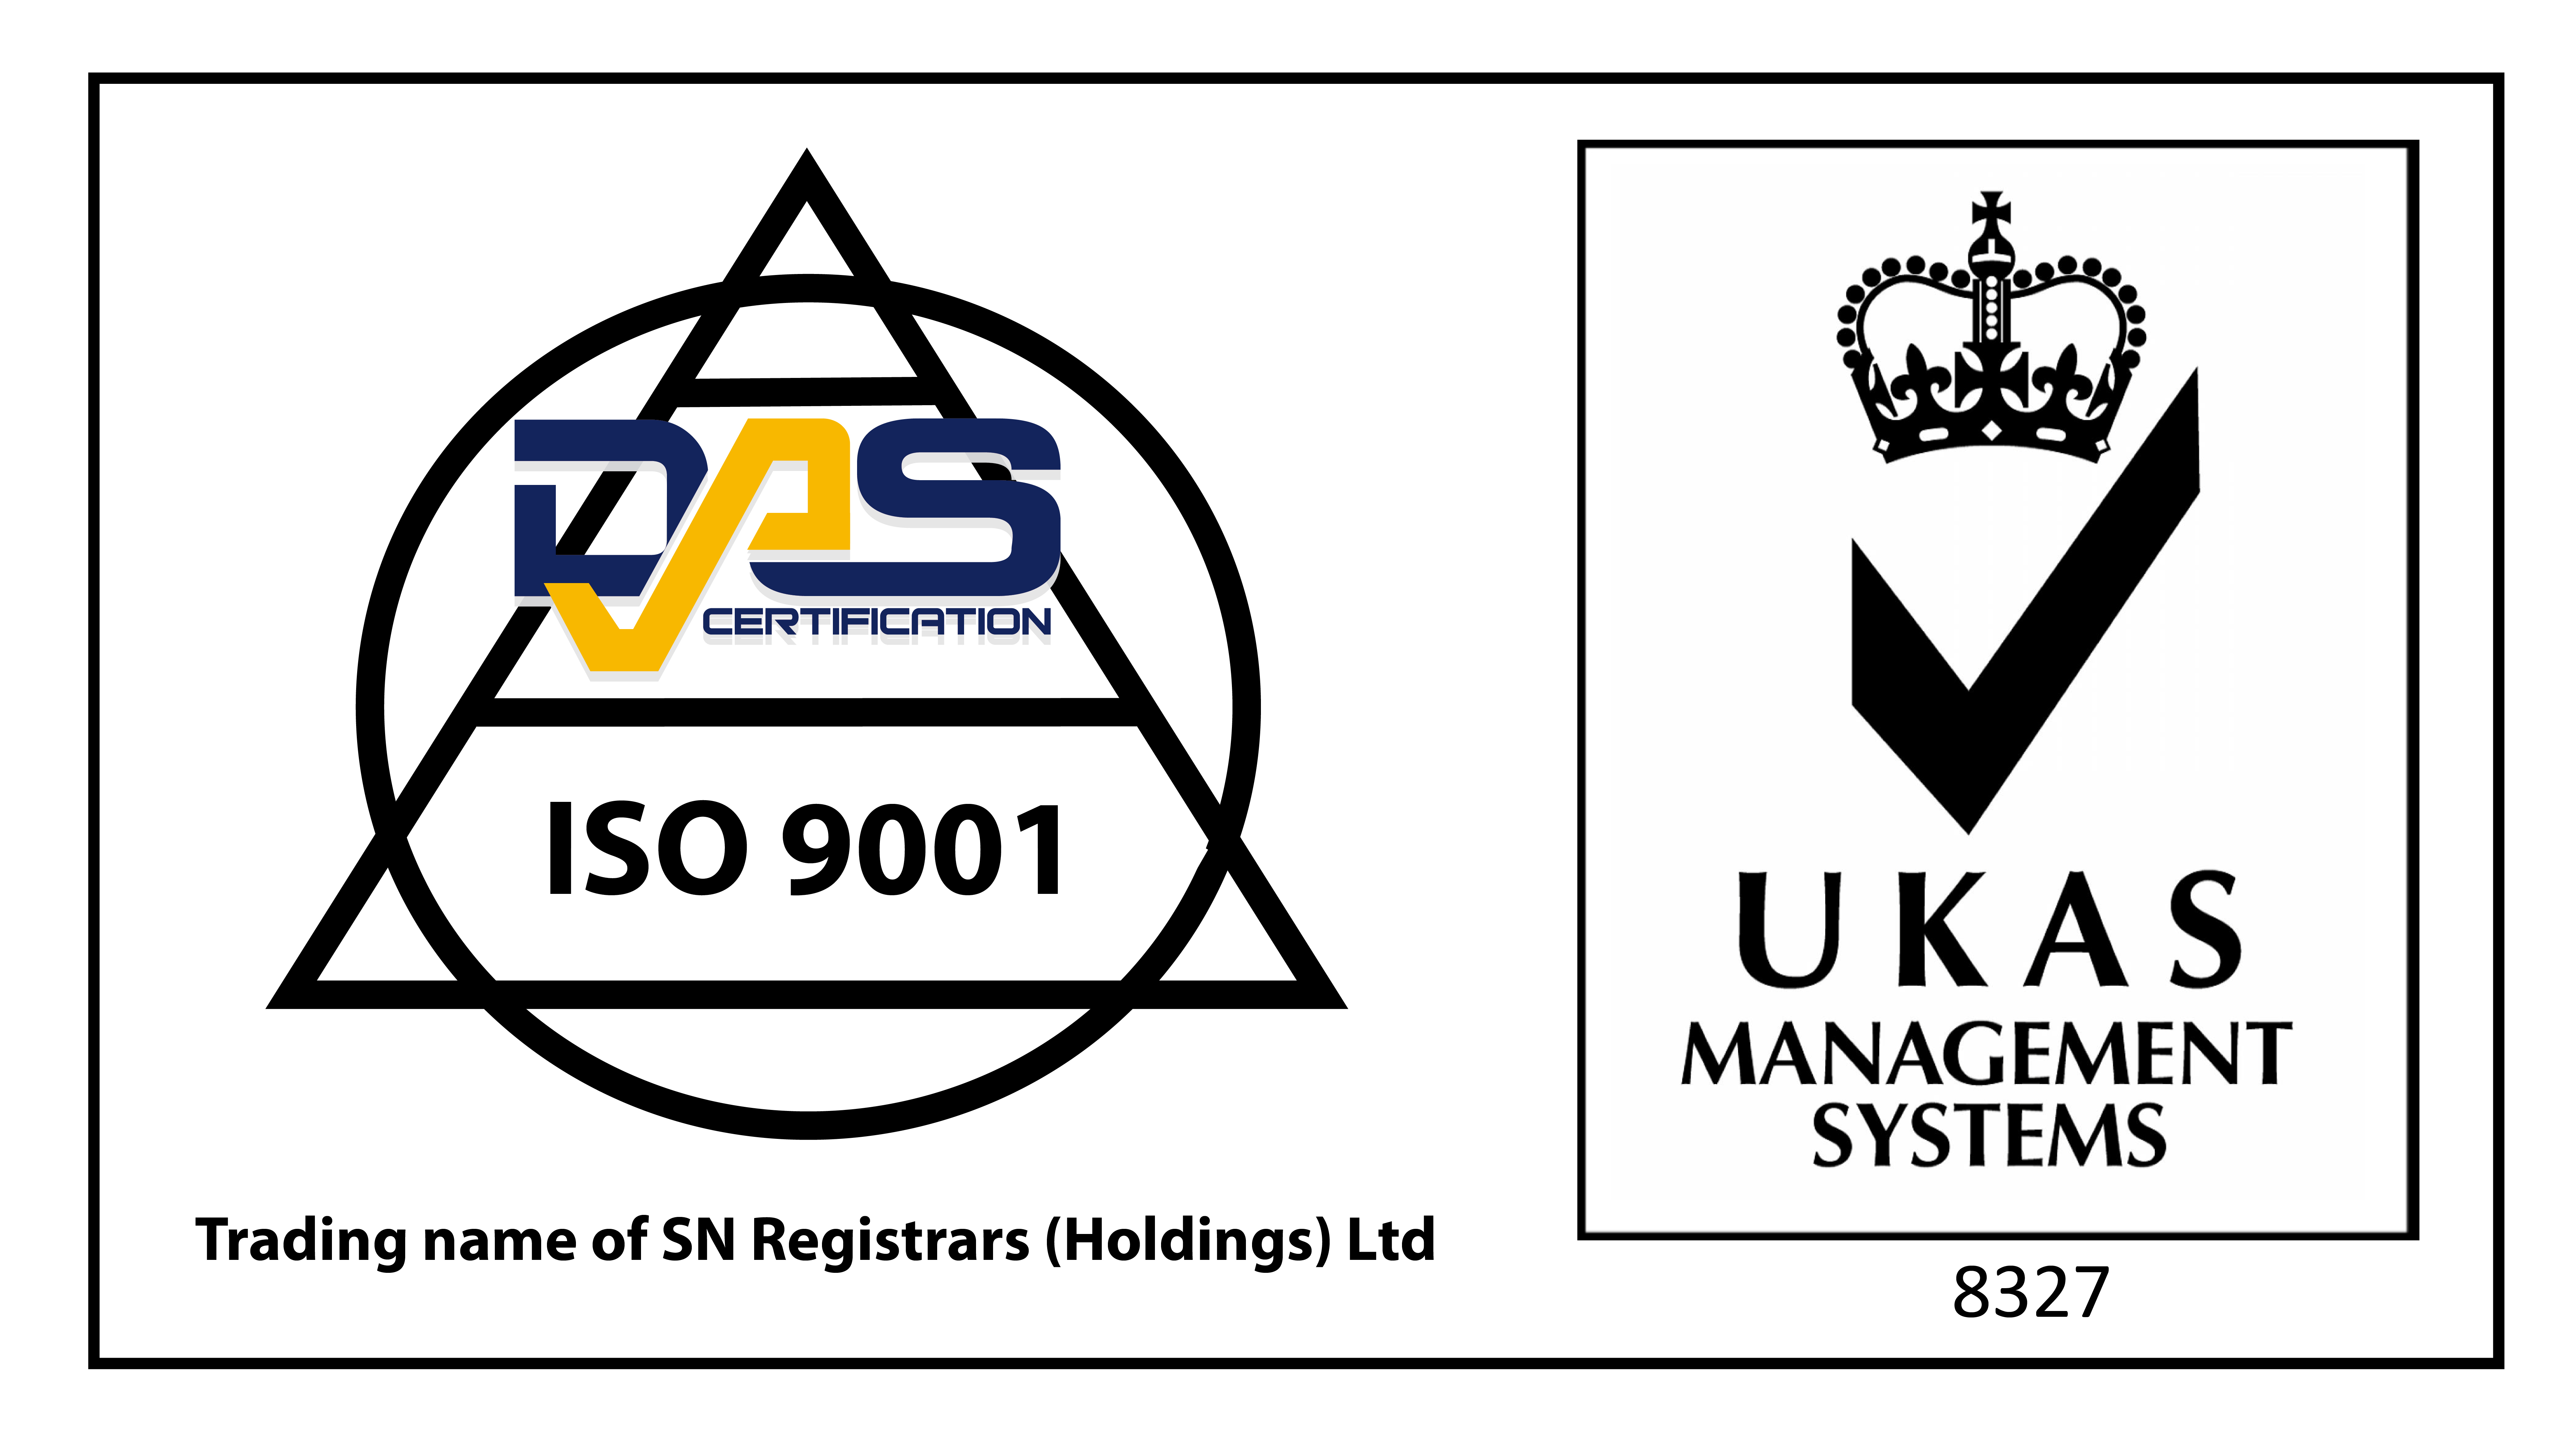 DAS ISO 9001 Quality Management Certification Logo